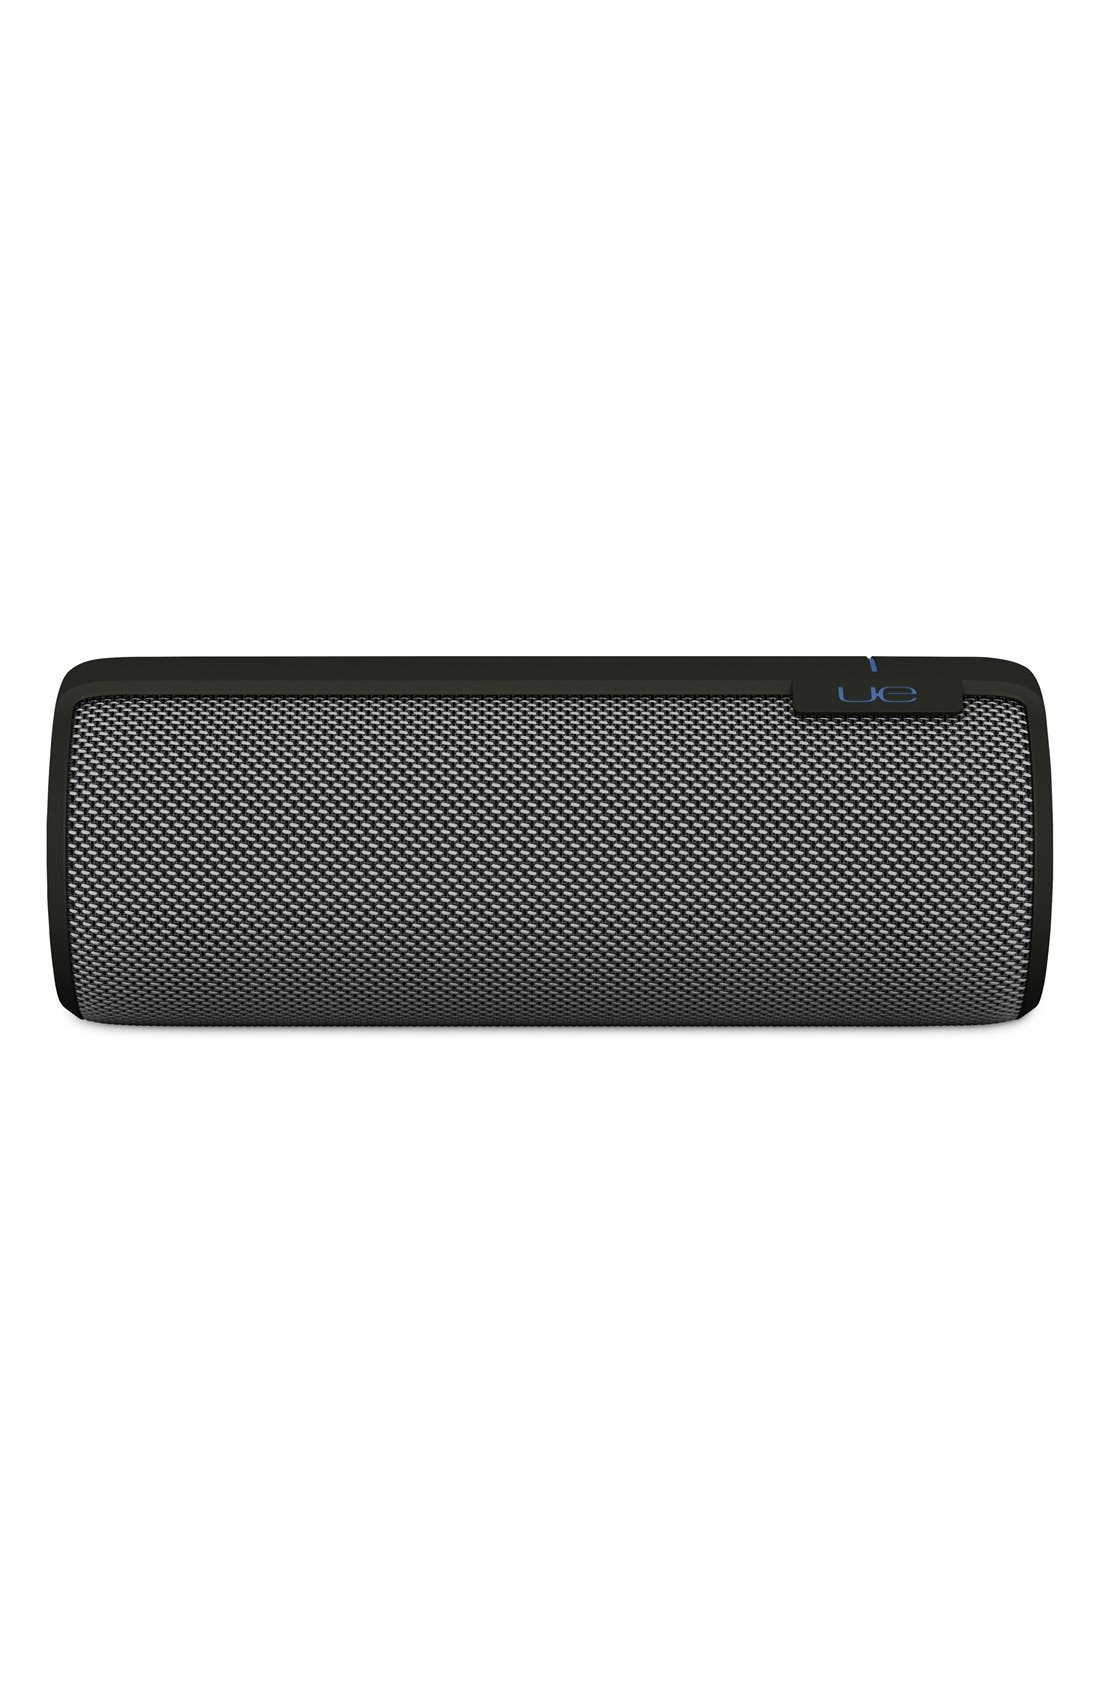 Megaboom Wireless Bluetooth<sup>®</sup> Speaker,                             Alternate thumbnail 3, color,                             001